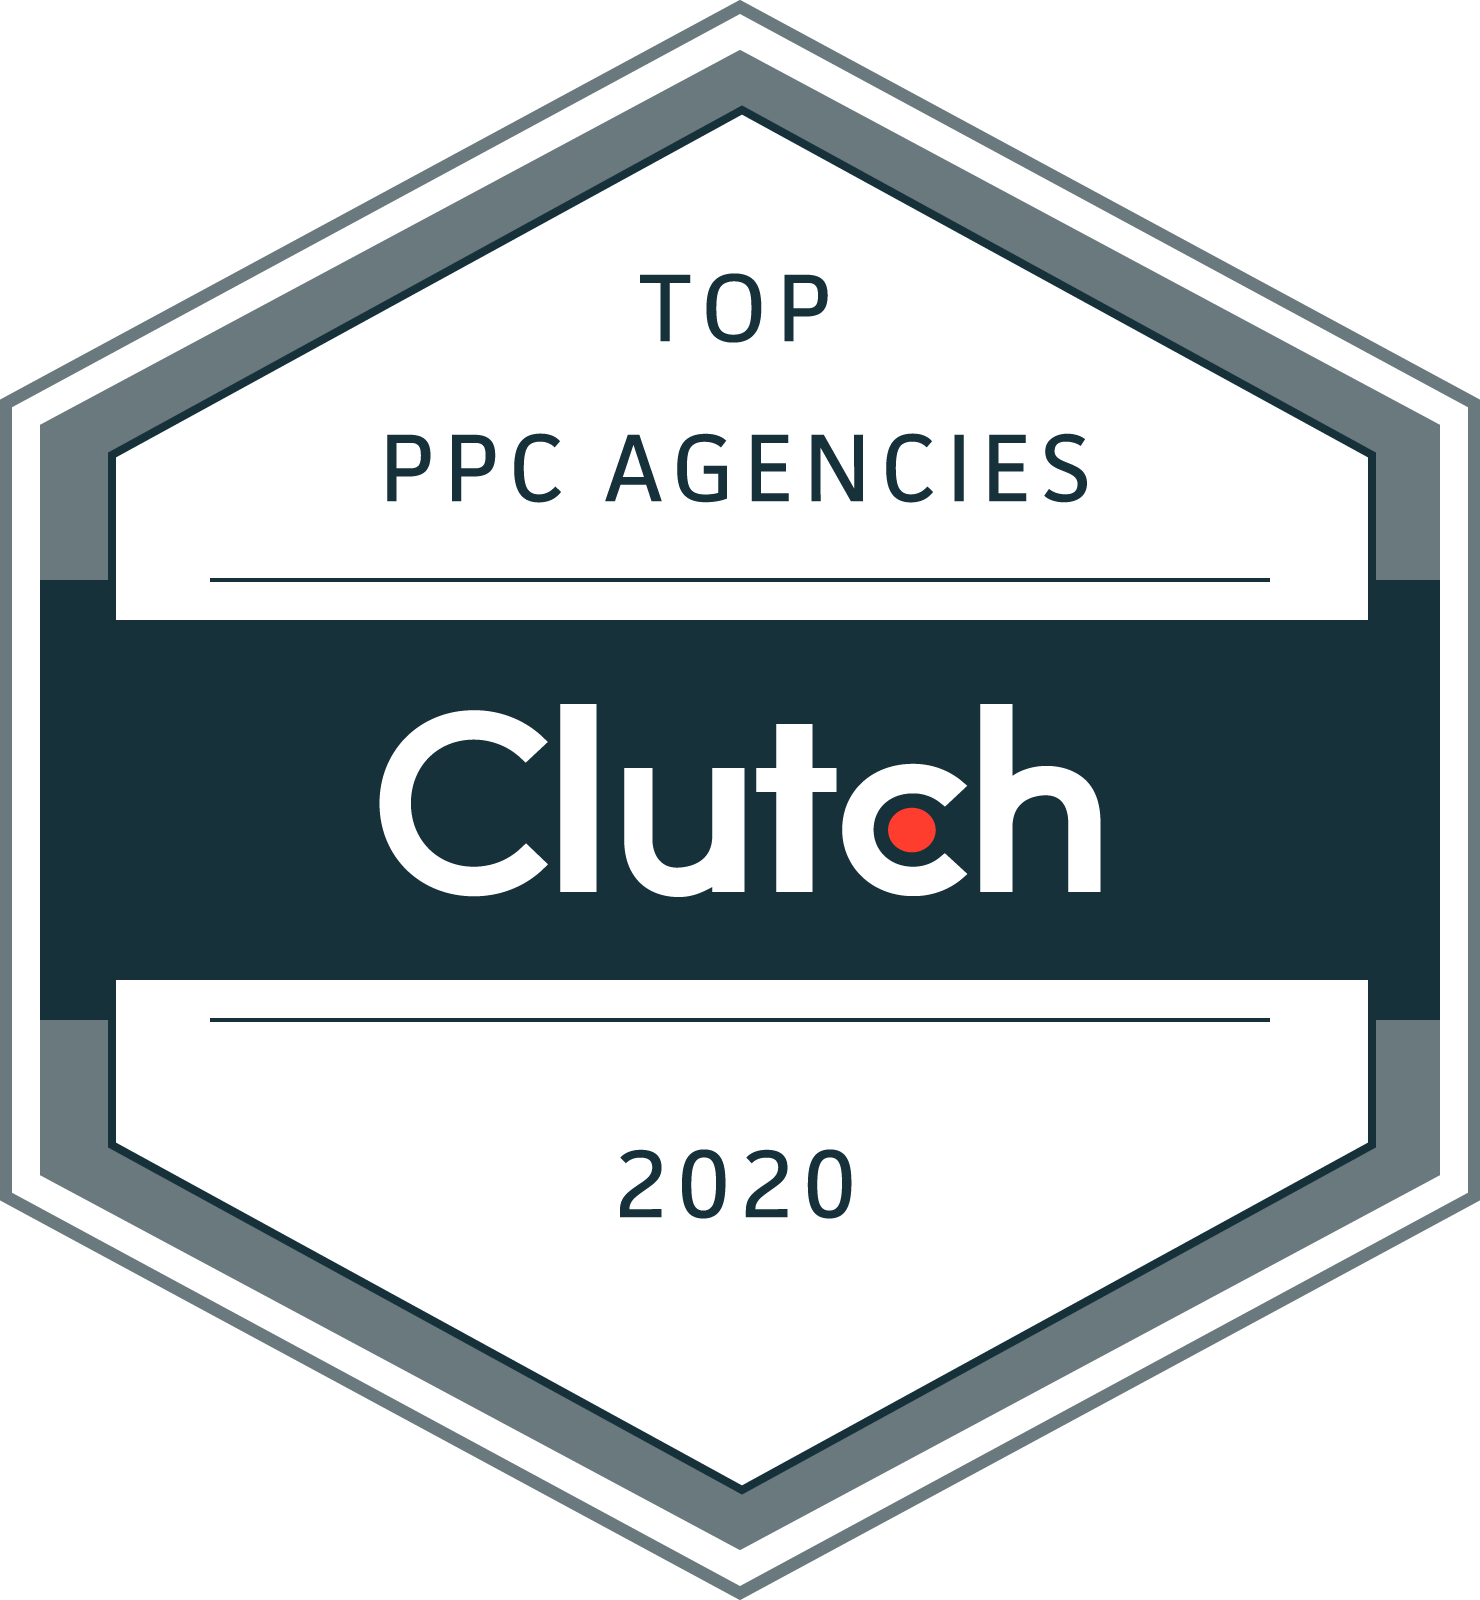 Top PPC Agencies 2020